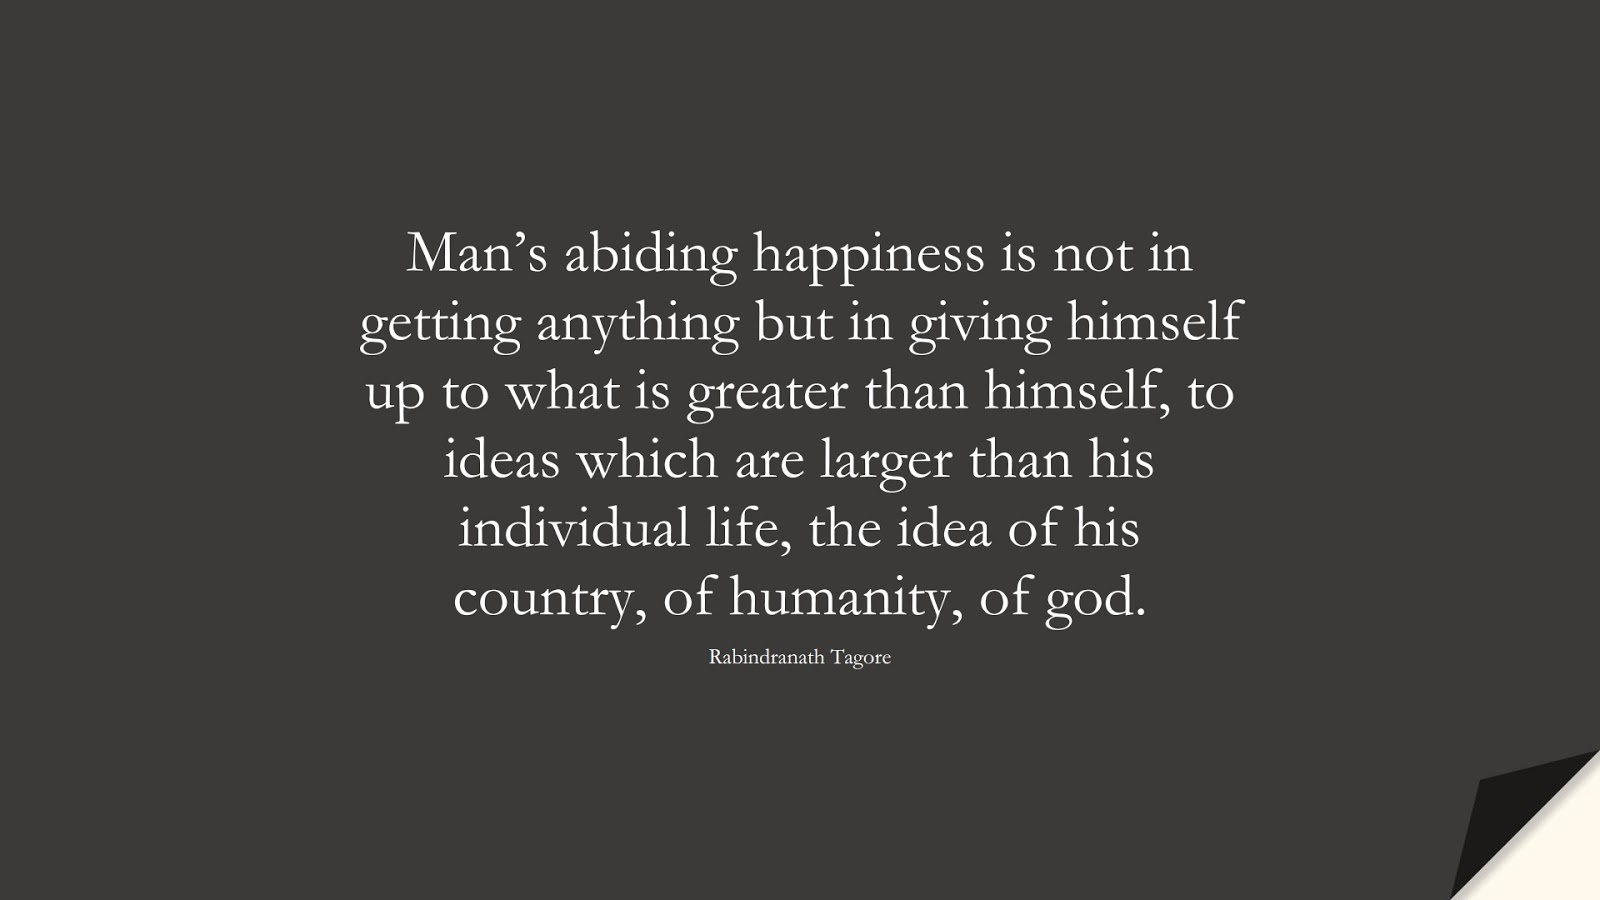 Man's abiding happiness is not in getting anything but in giving himself up to what is greater than himself, to ideas which are larger than his individual life, the idea of his country, of humanity, of god. (Rabindranath Tagore);  #HumanityQuotes